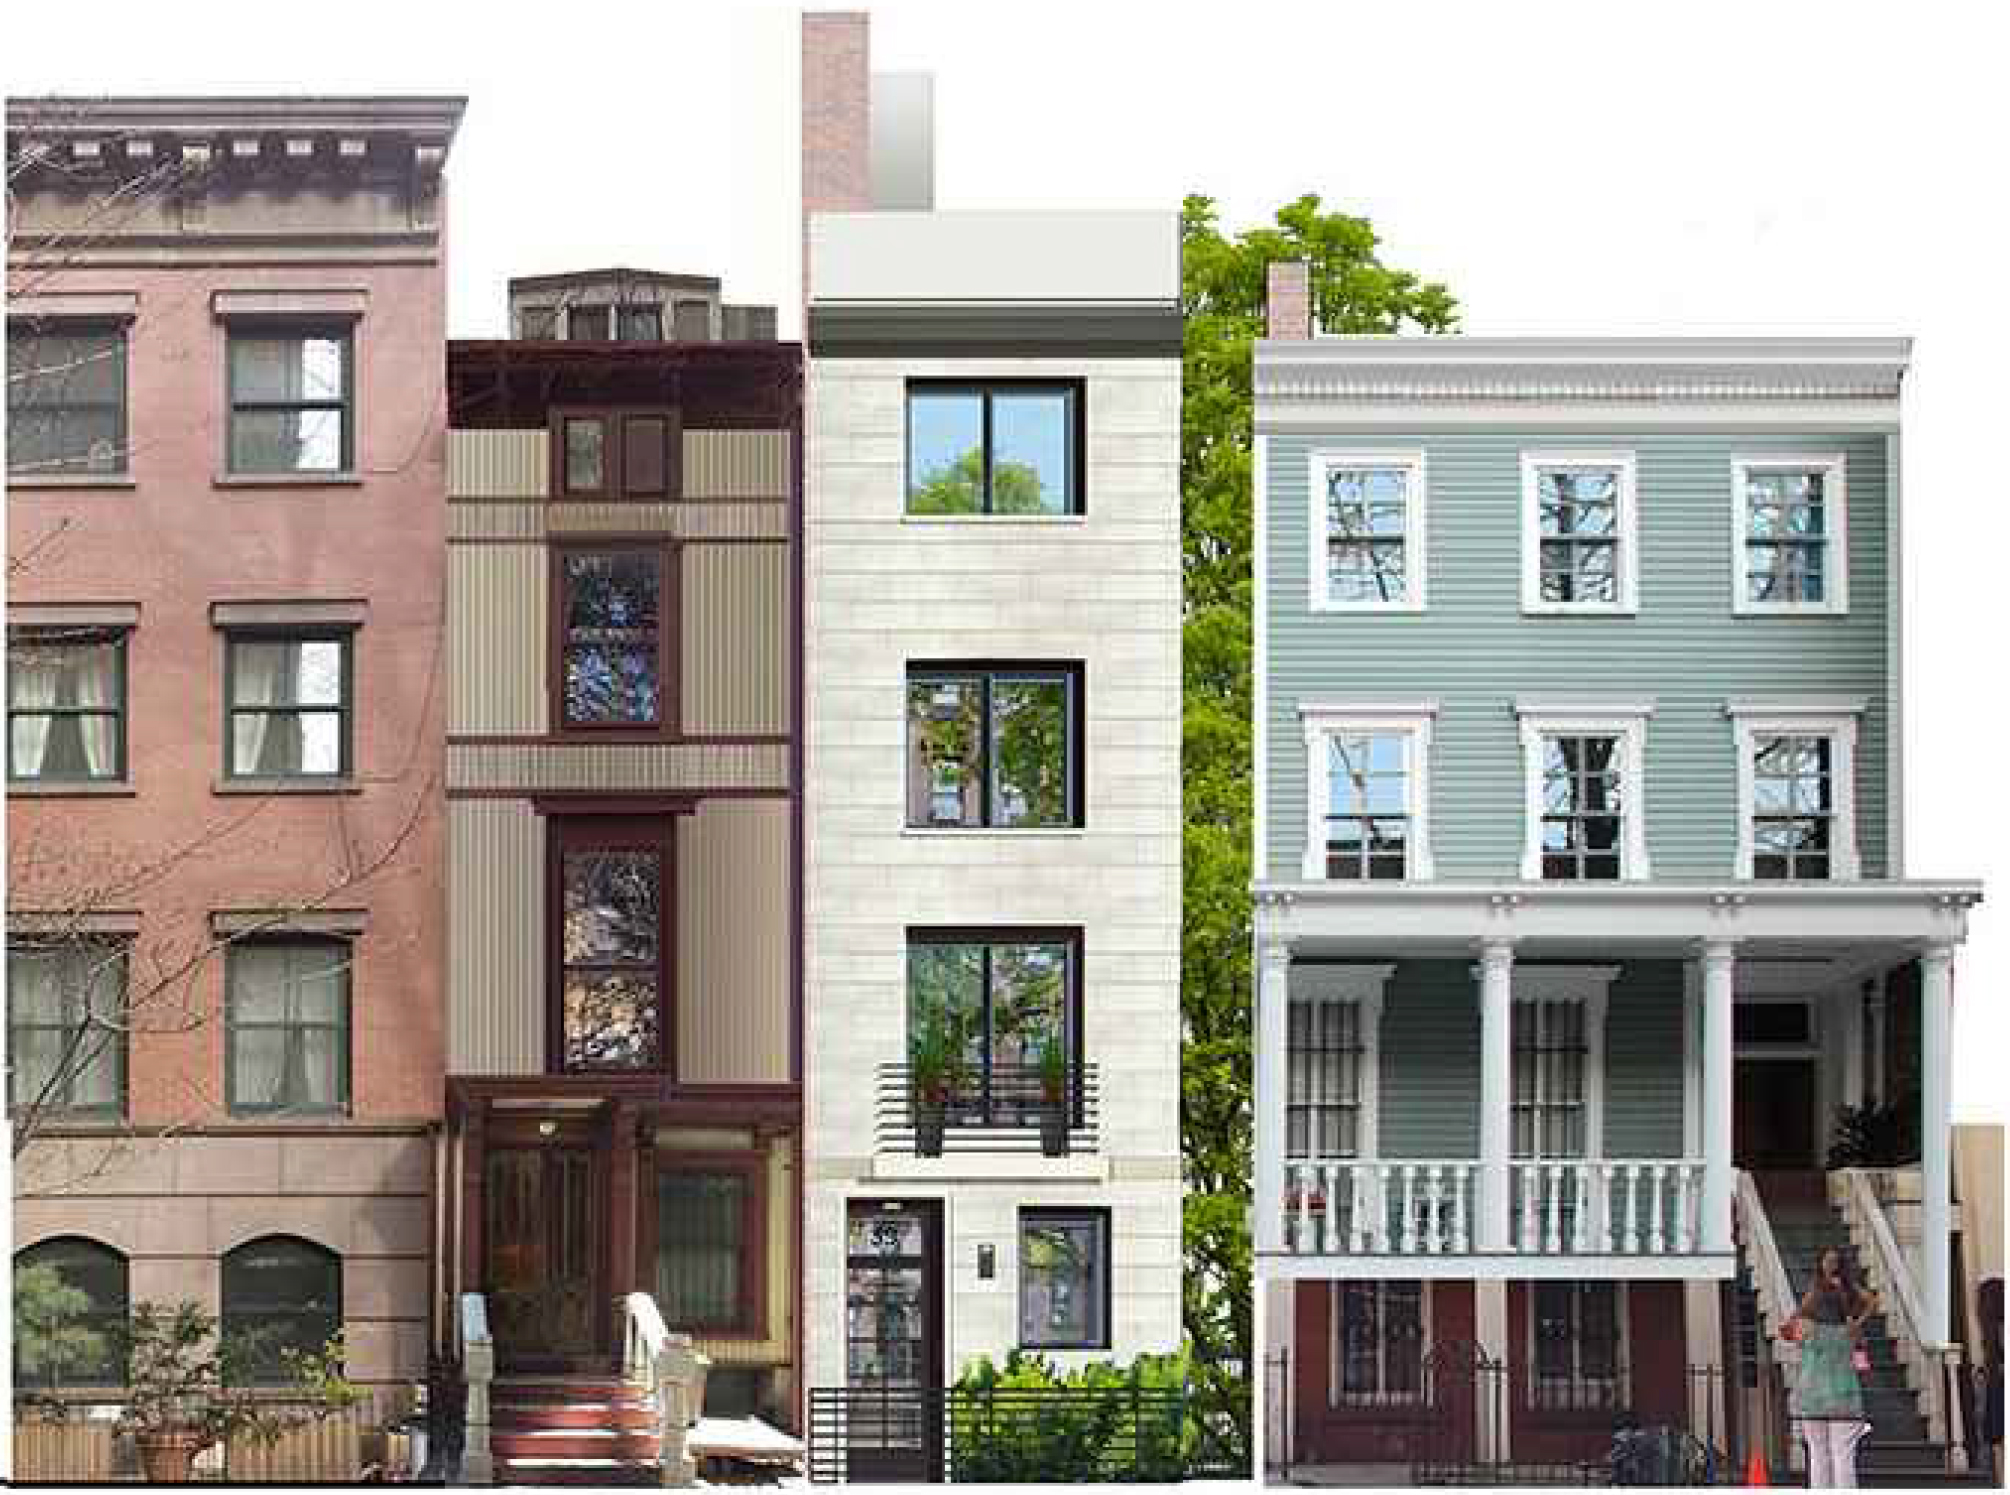 Previous proposal for 39 South Elliott Place